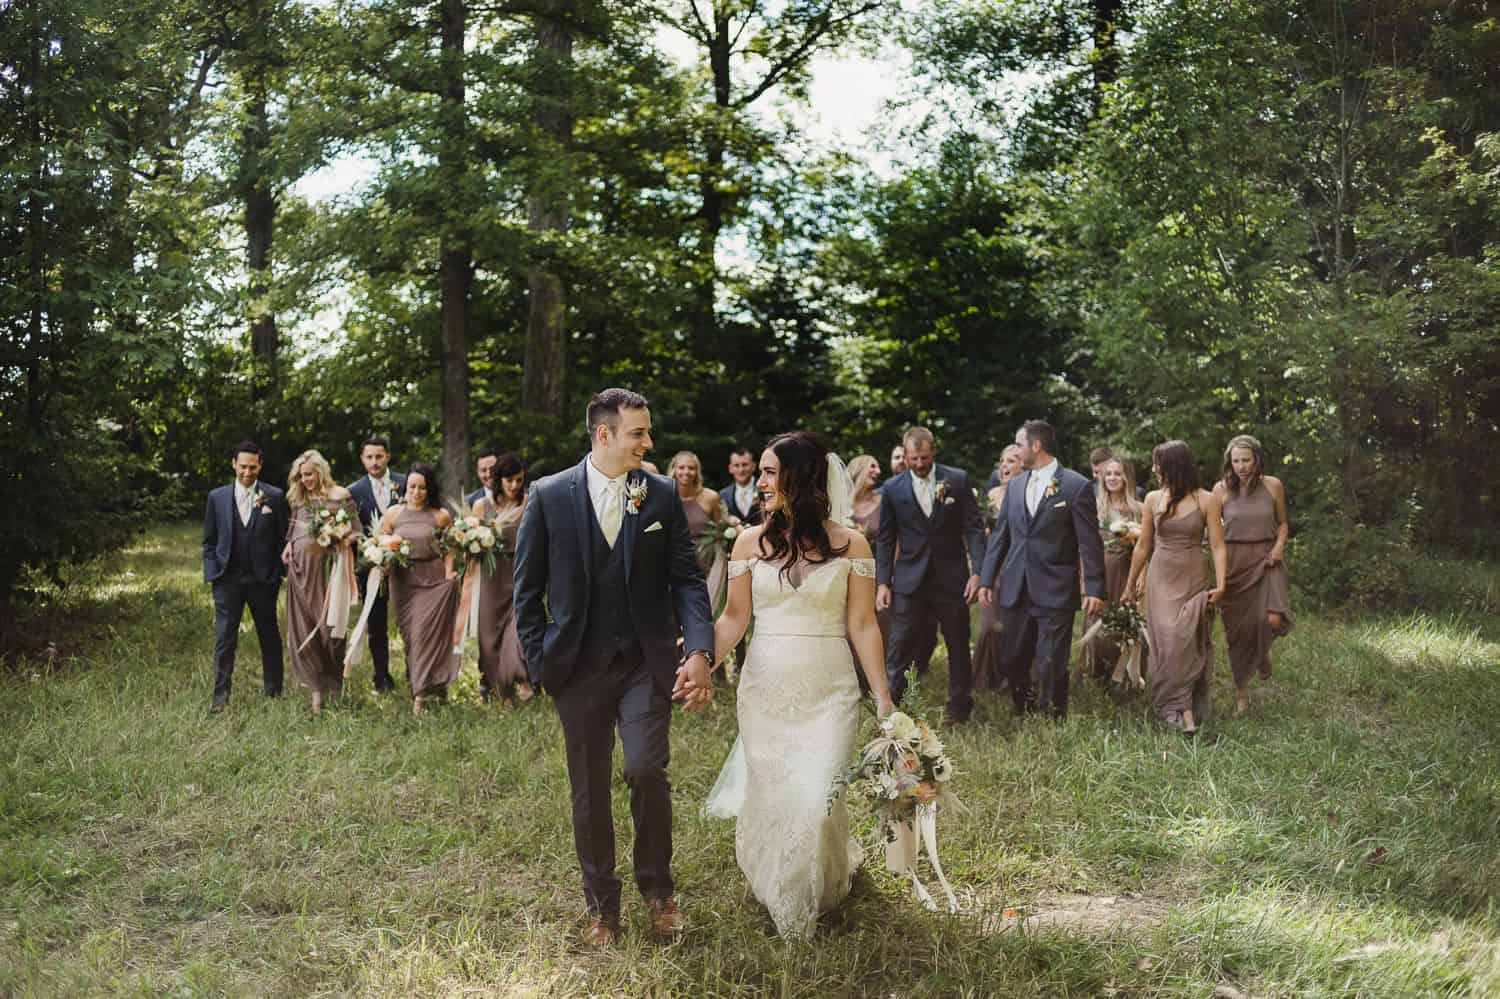 A bride and groom lead the way across a field with their wedding party.